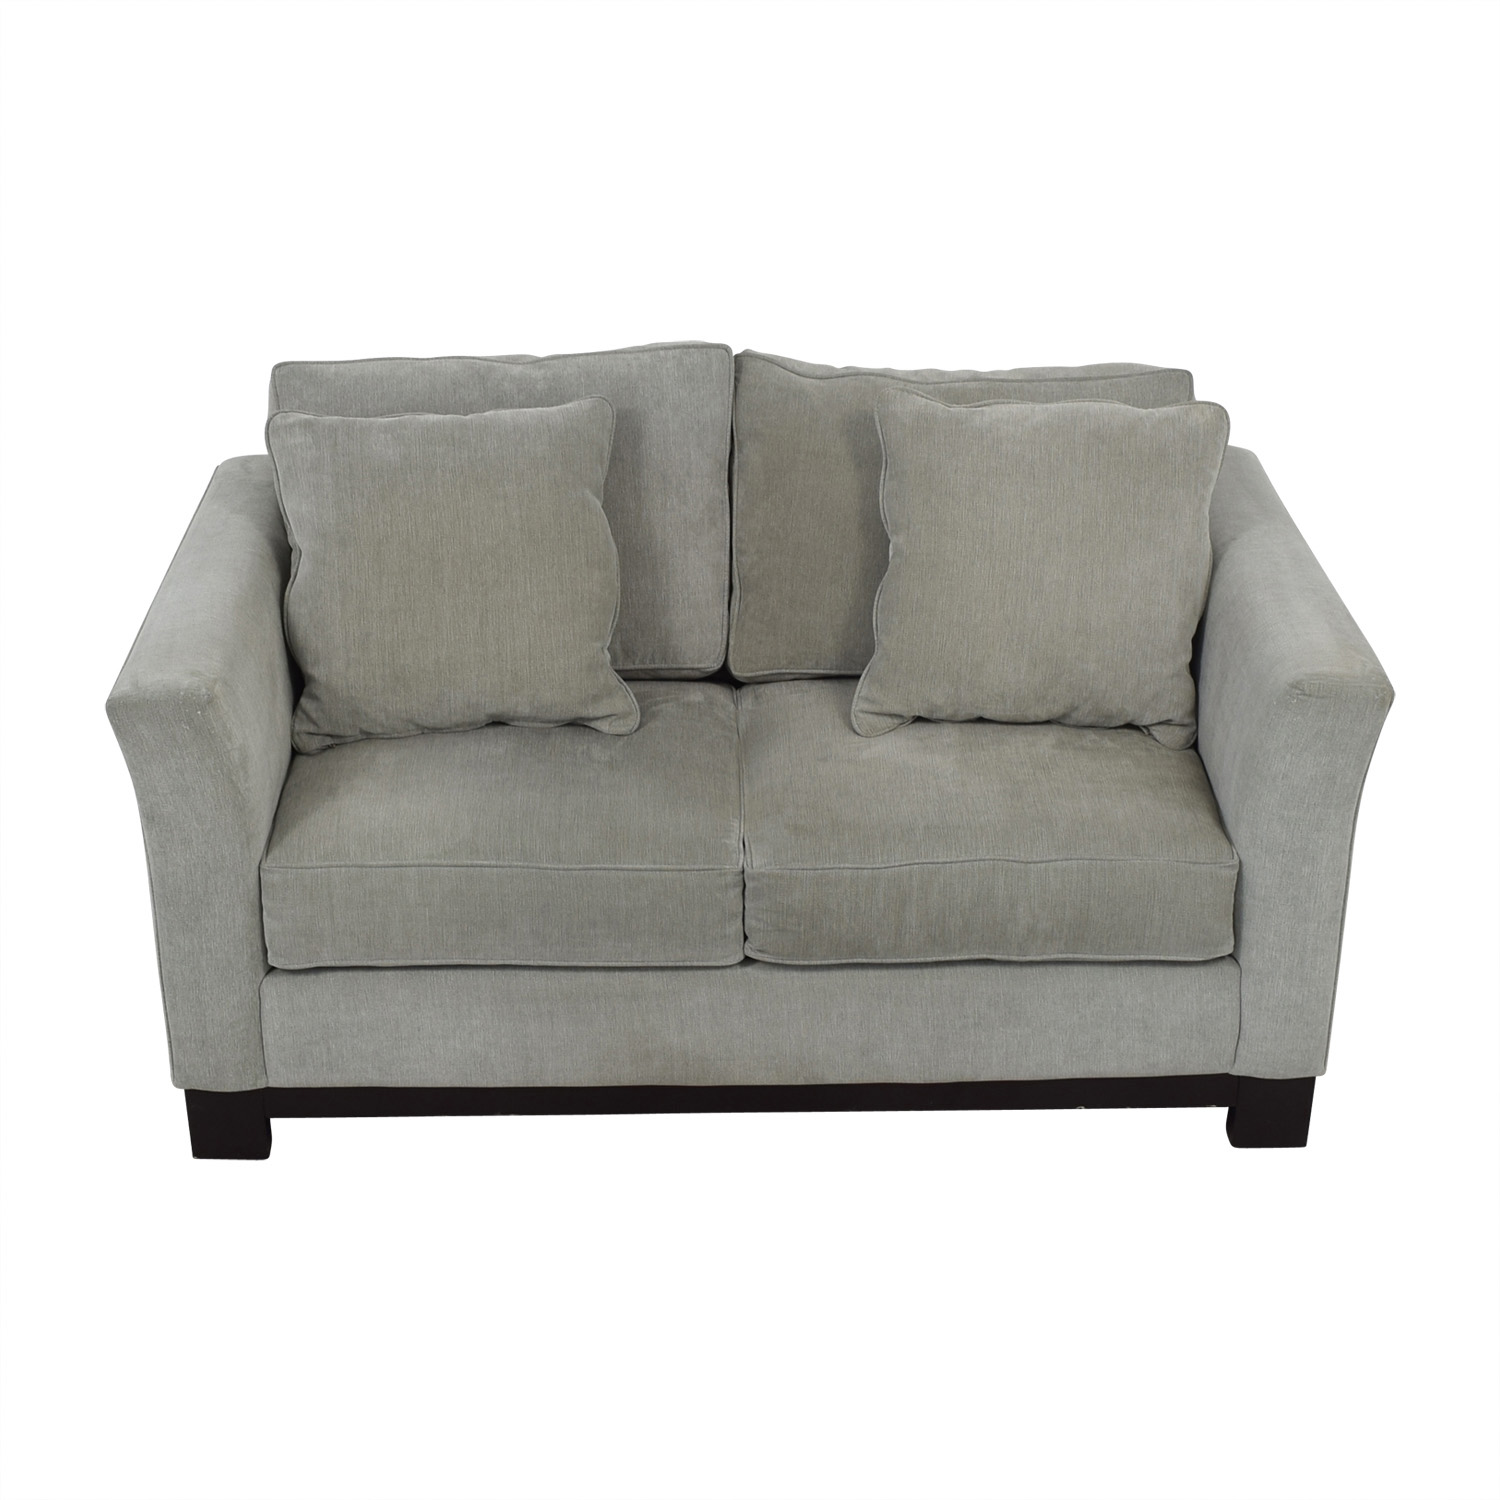 Macy's Macy's Light Blue Loveseat nyc